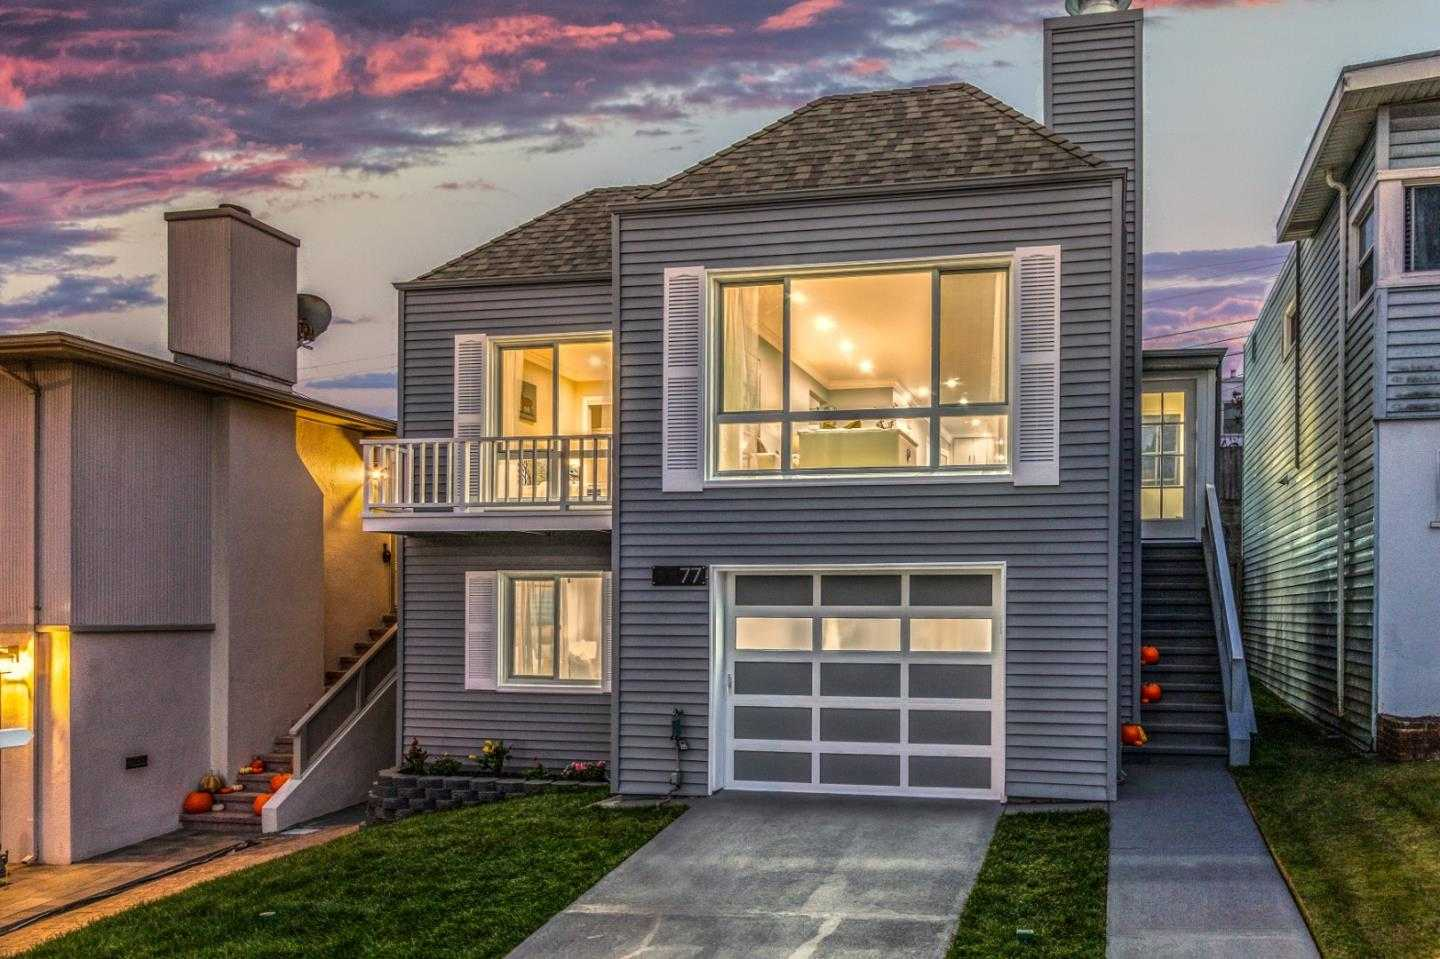 $1,398,000 - 4Br/3Ba -  for Sale in Daly City